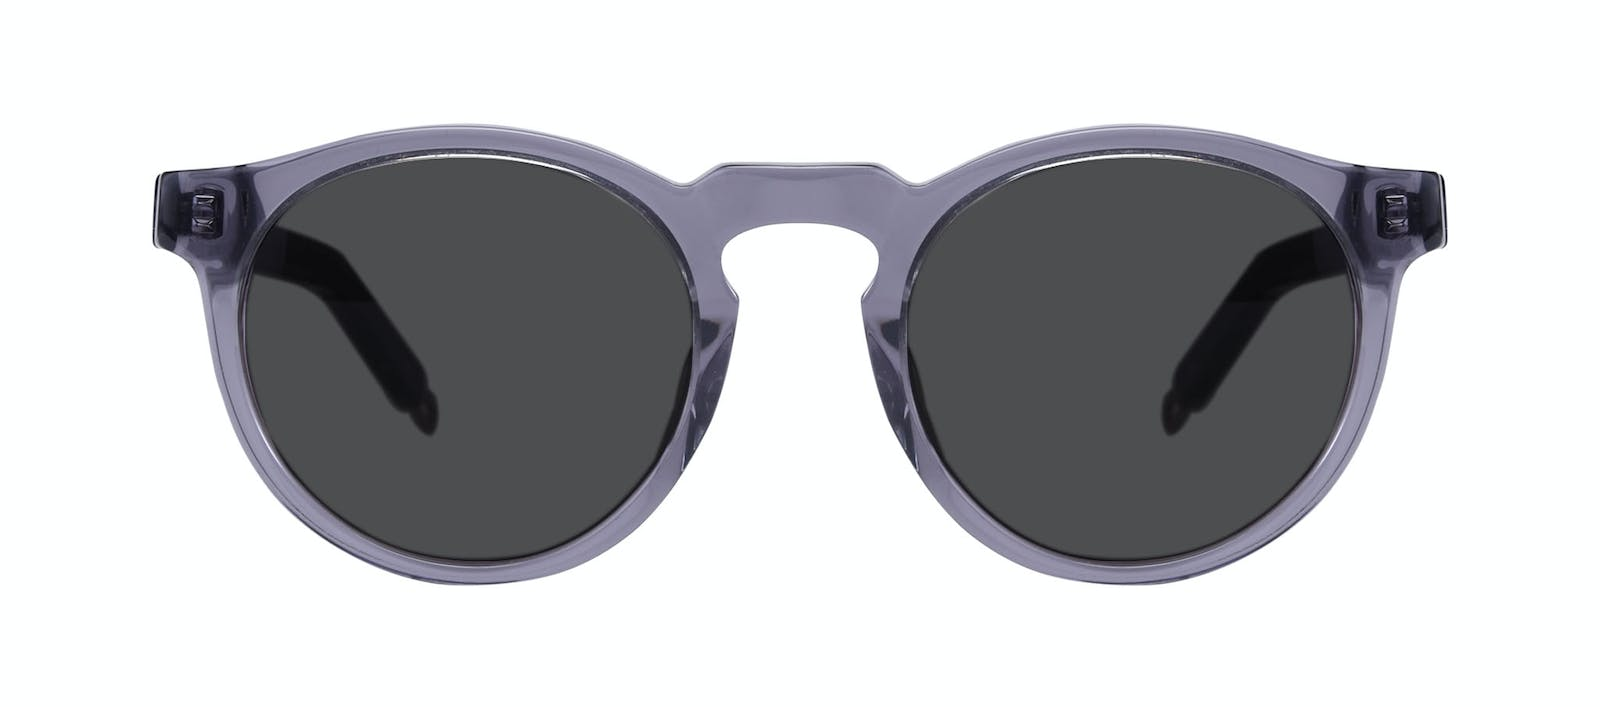 e996a28f55a Affordable Fashion Glasses Round Sunglasses Men Ace Shadow Front